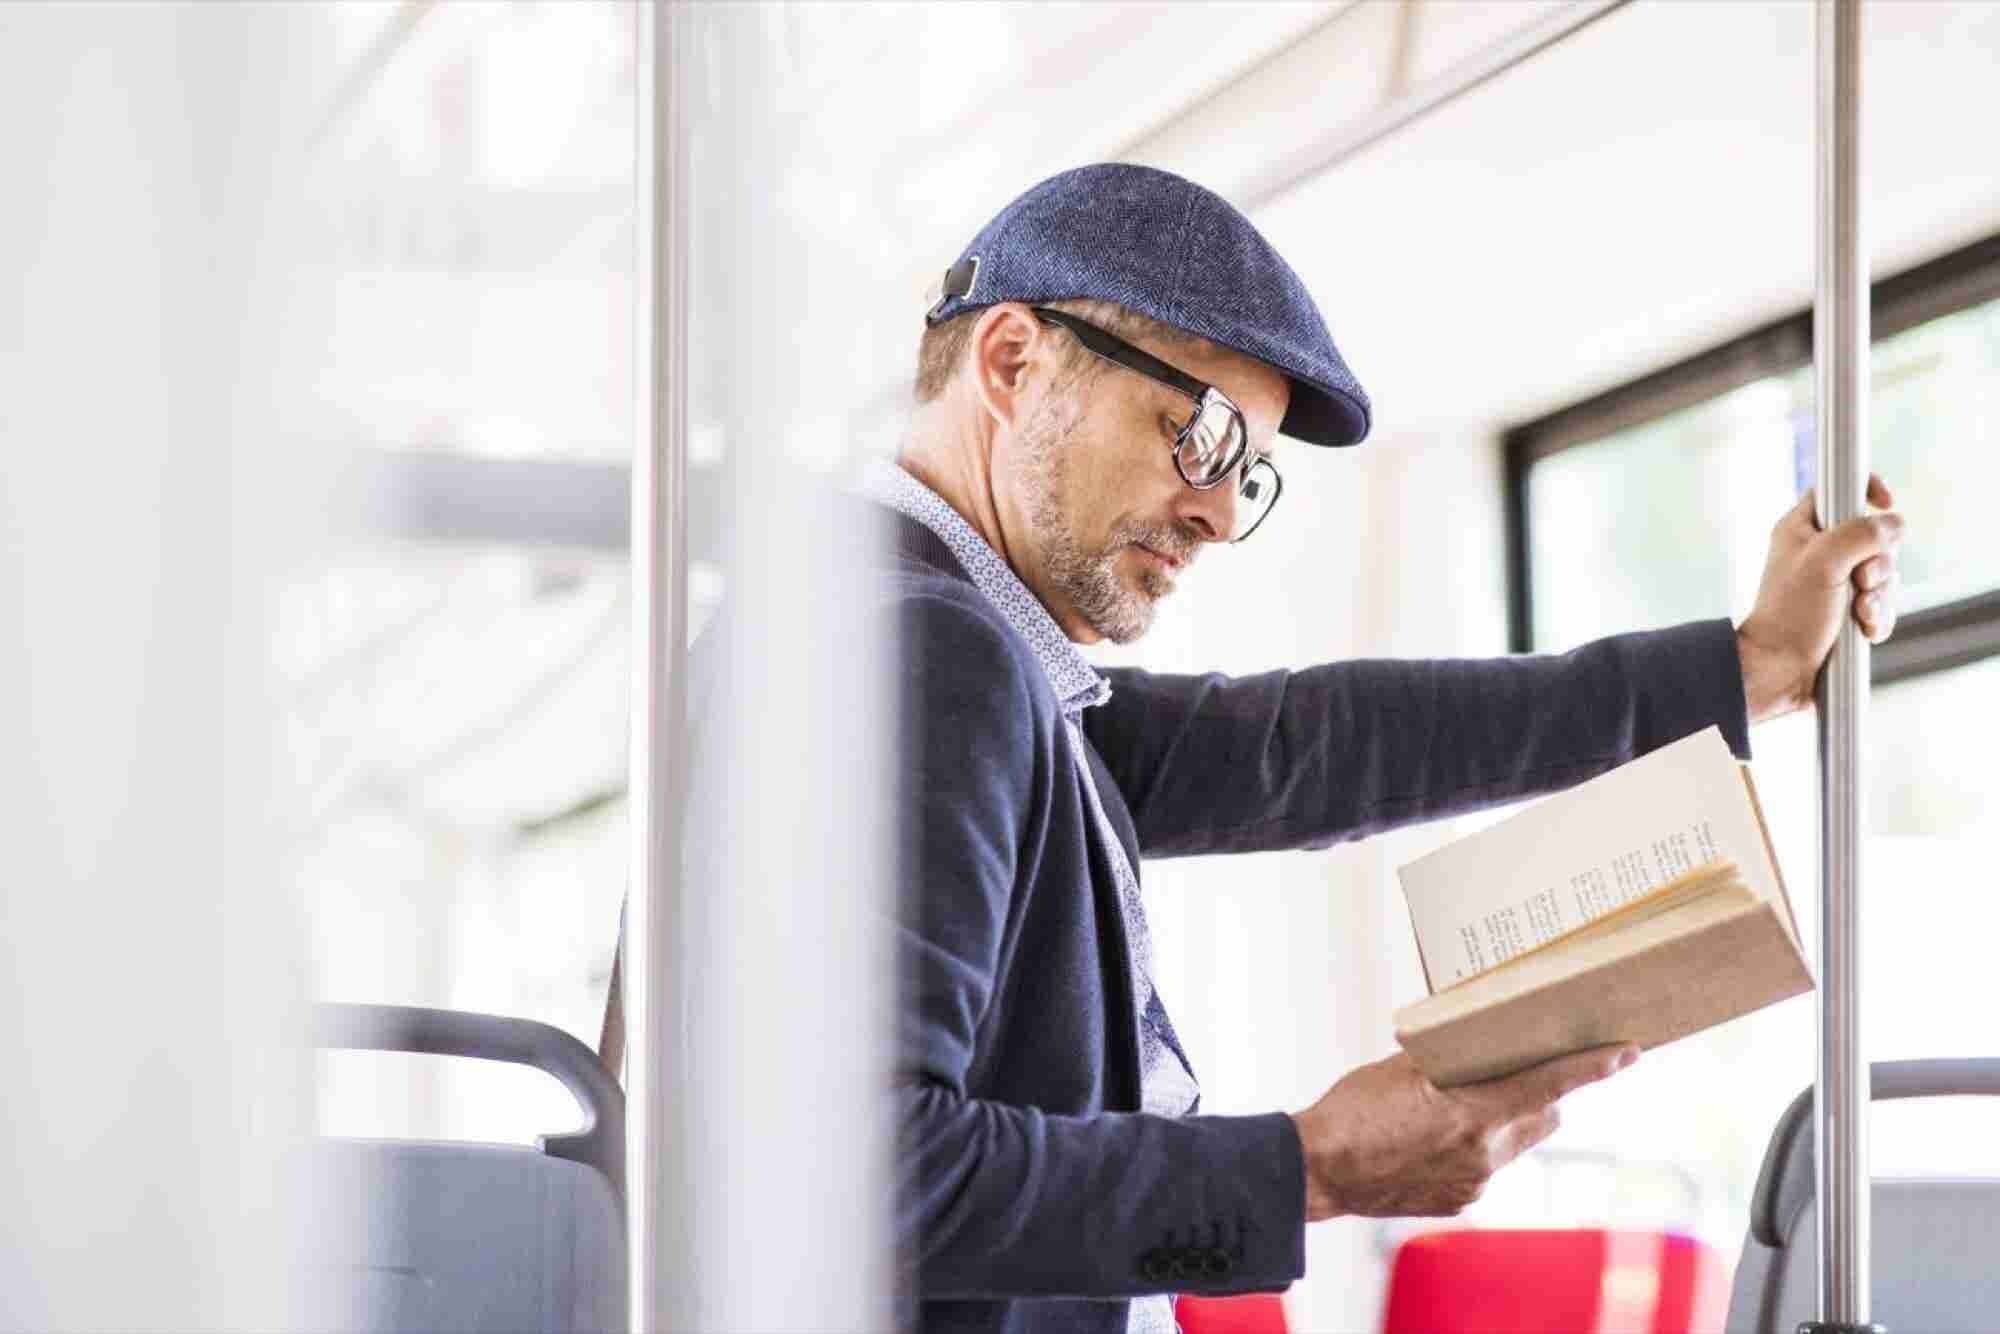 8 Books Every Manager Should Read to Become a Better Leader